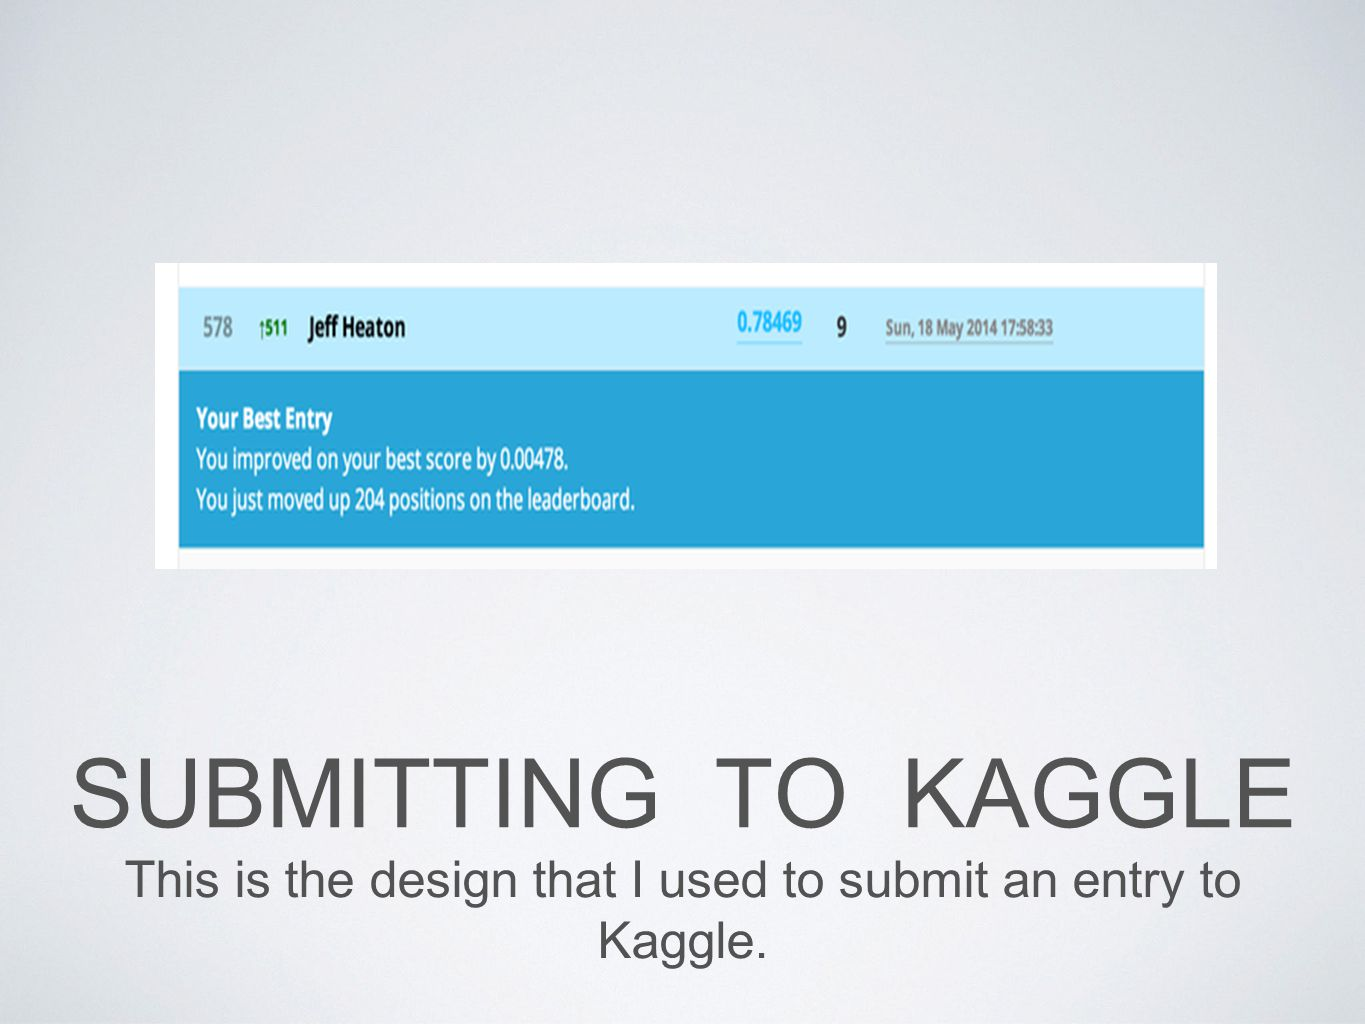 This is the design that I used to submit an entry to Kaggle.